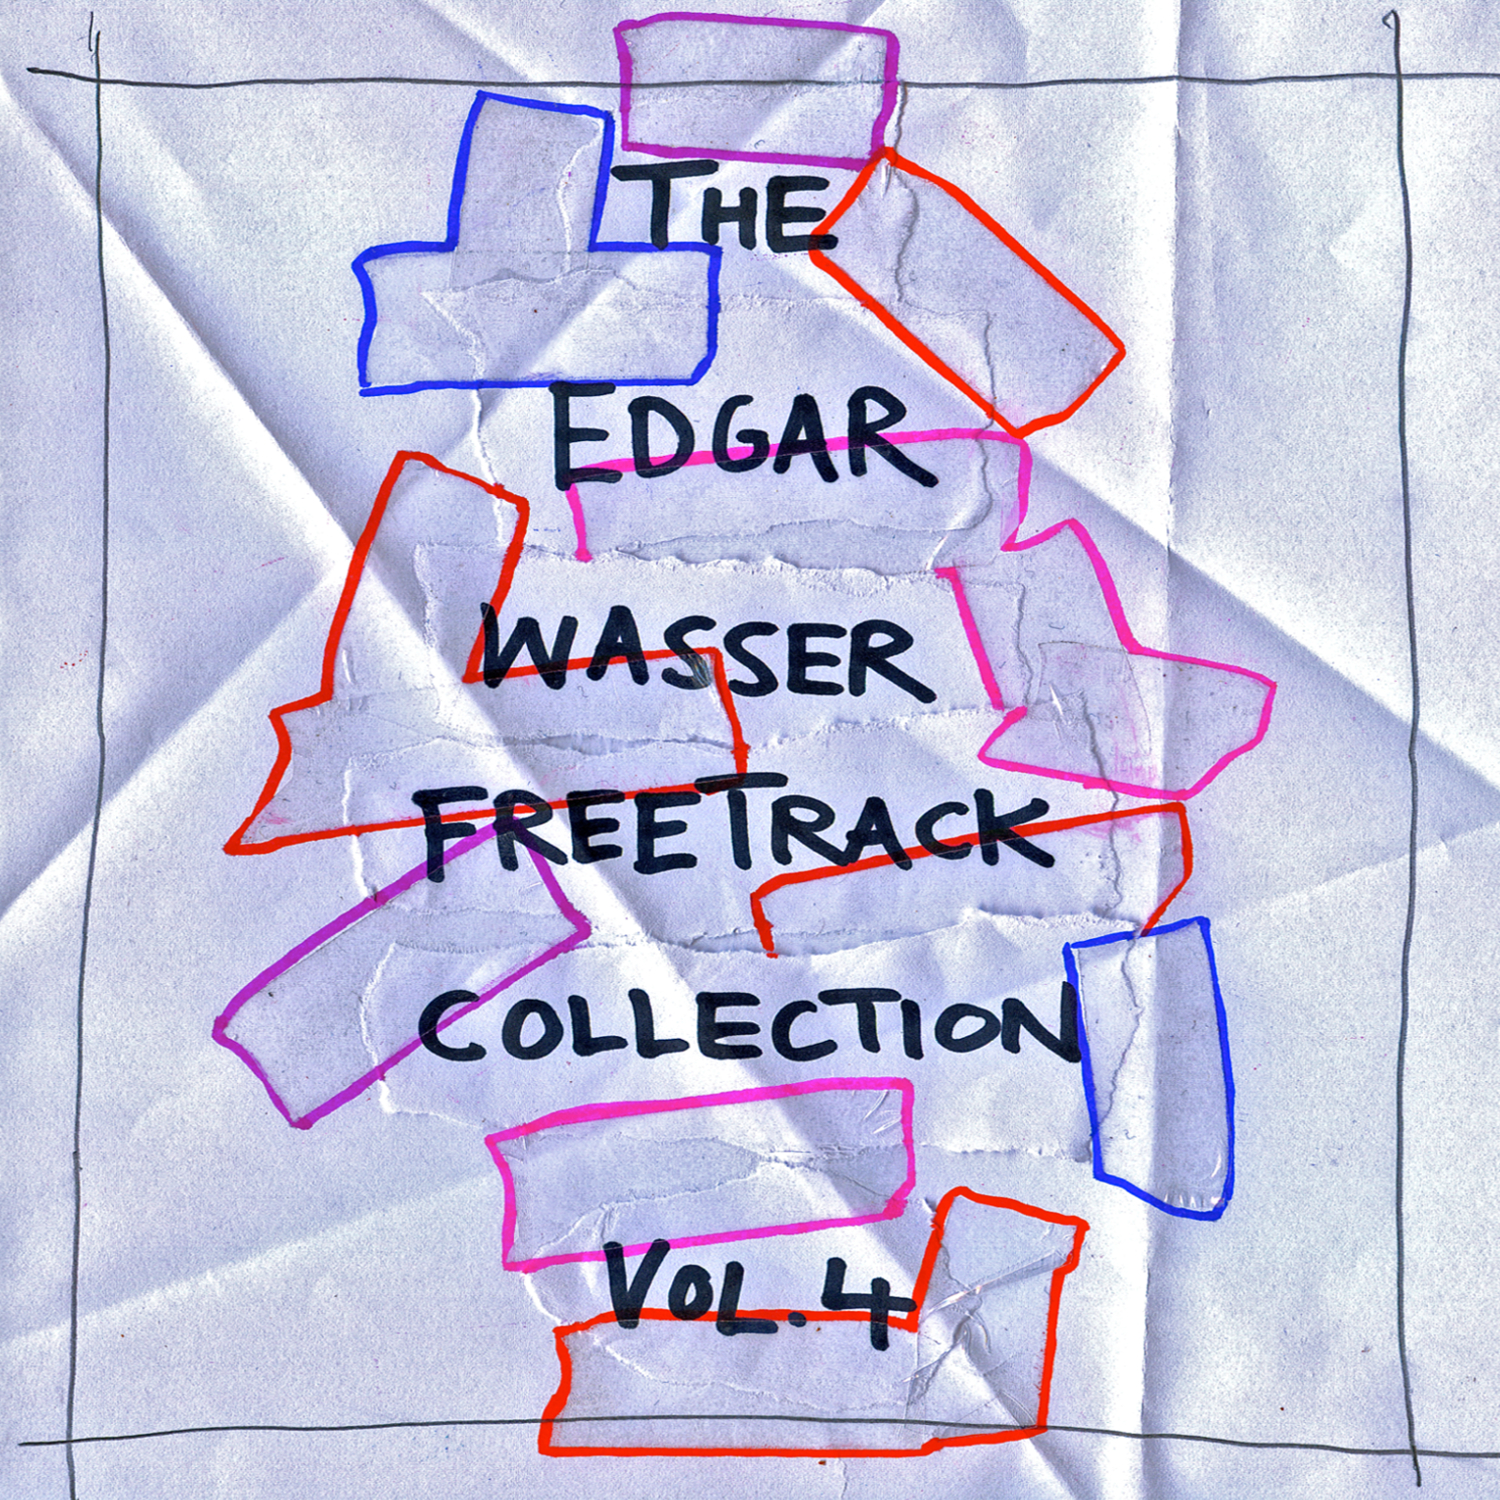 EDGAR WASSER - FREETRACK COLLECTION VOL.4 | FREE DOWNLOAD IM ATOMLABOR BLOG